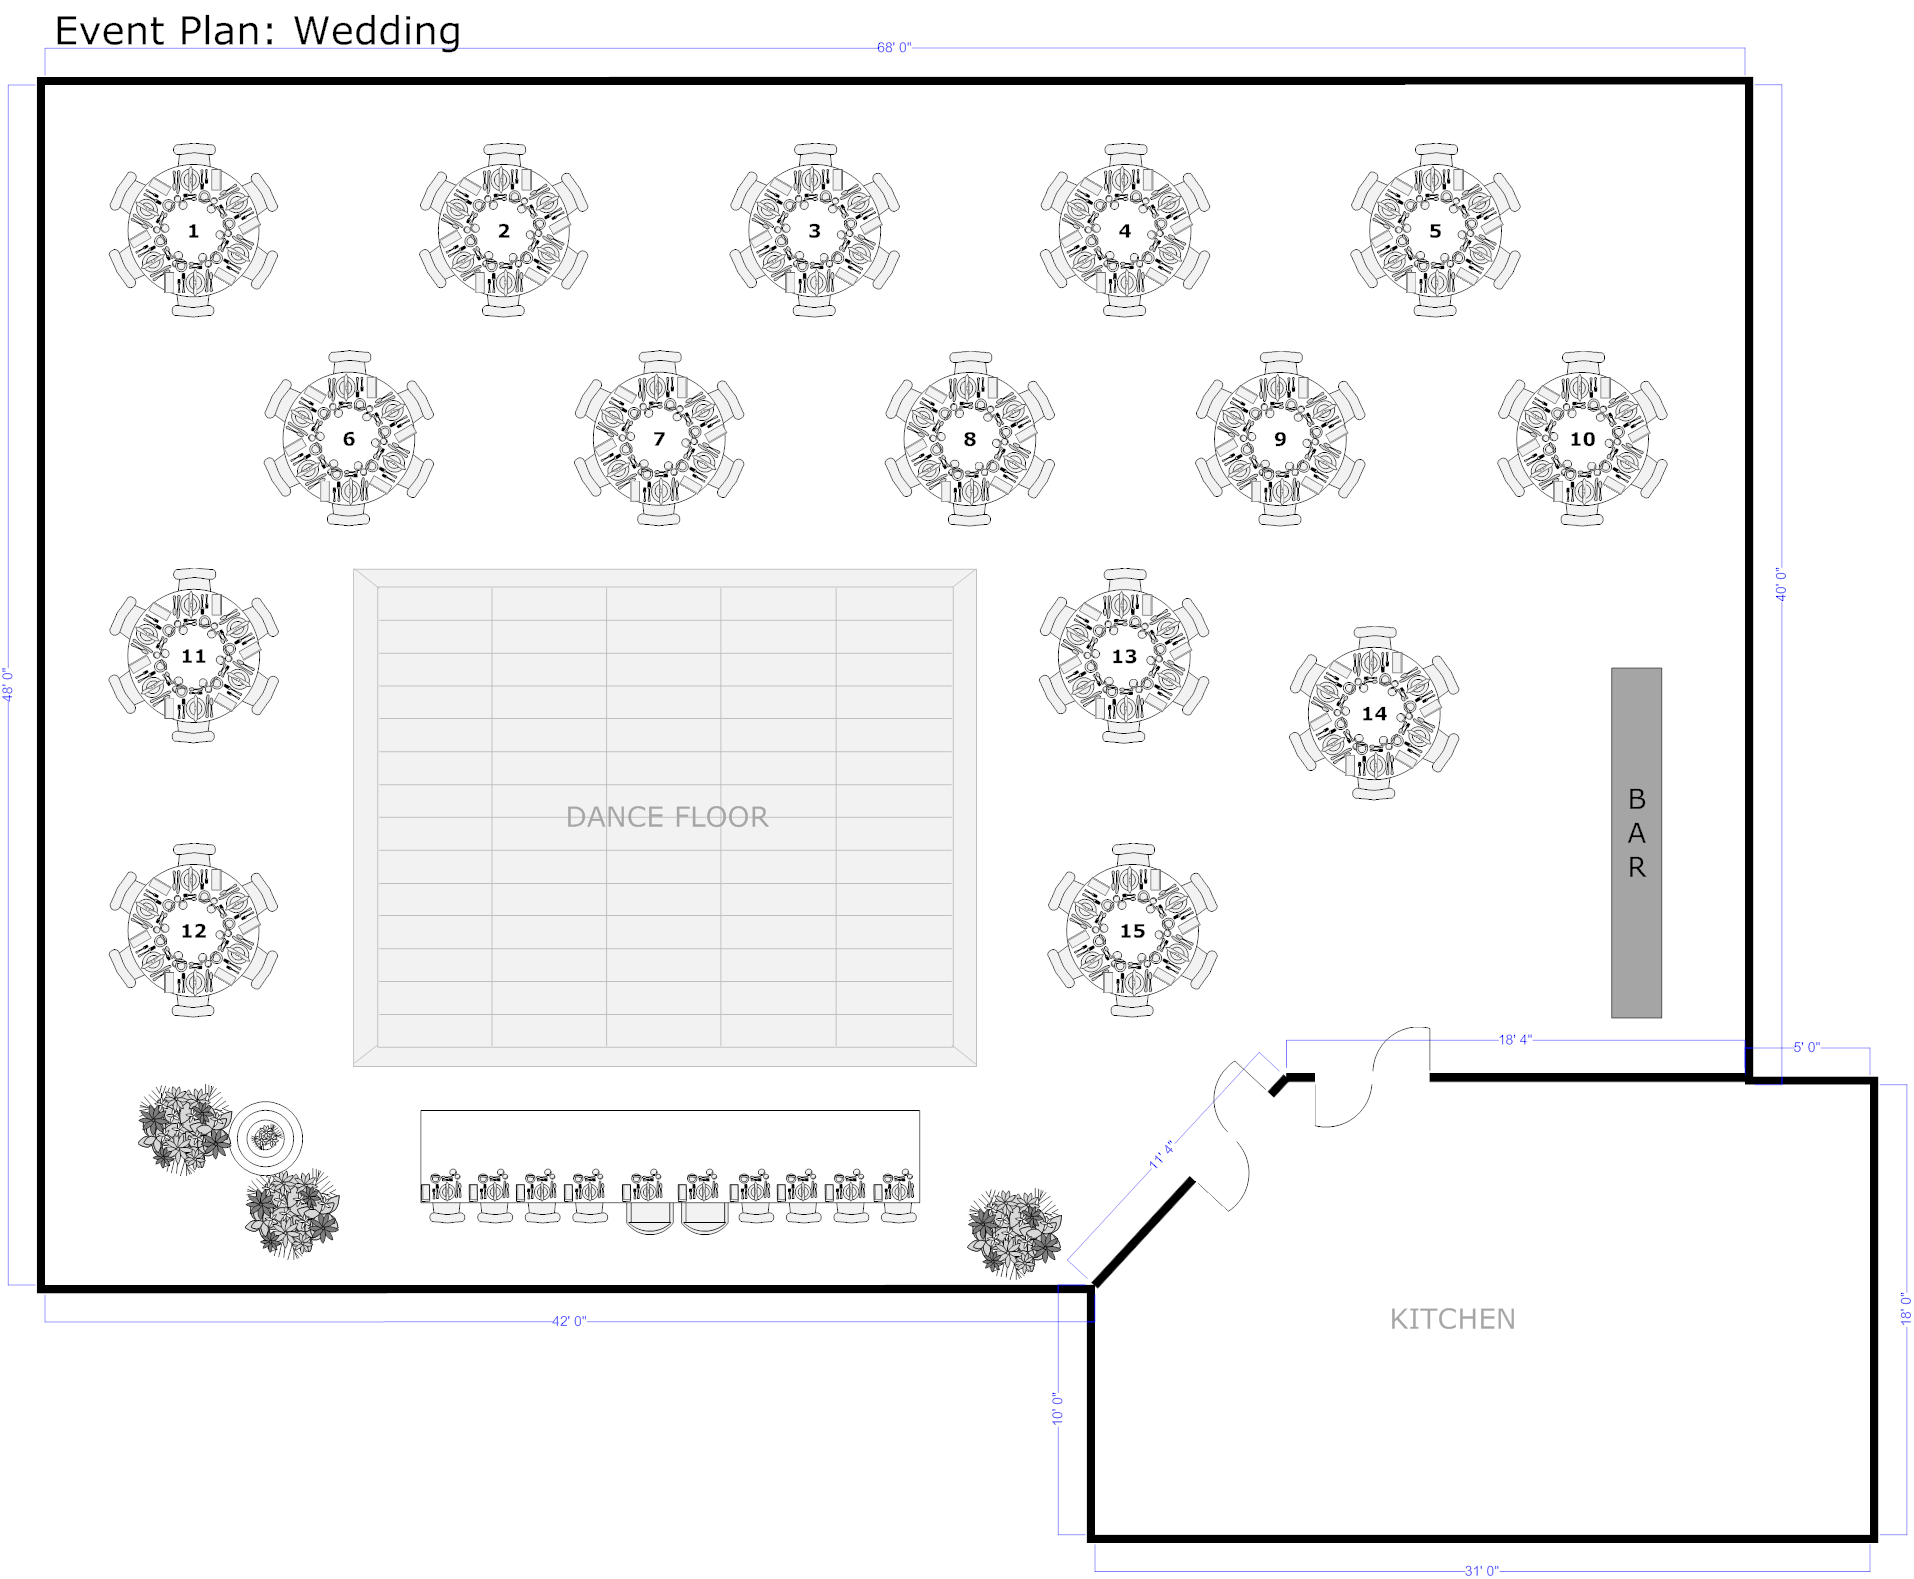 Pin By Tiny King On Event Planning - Setup